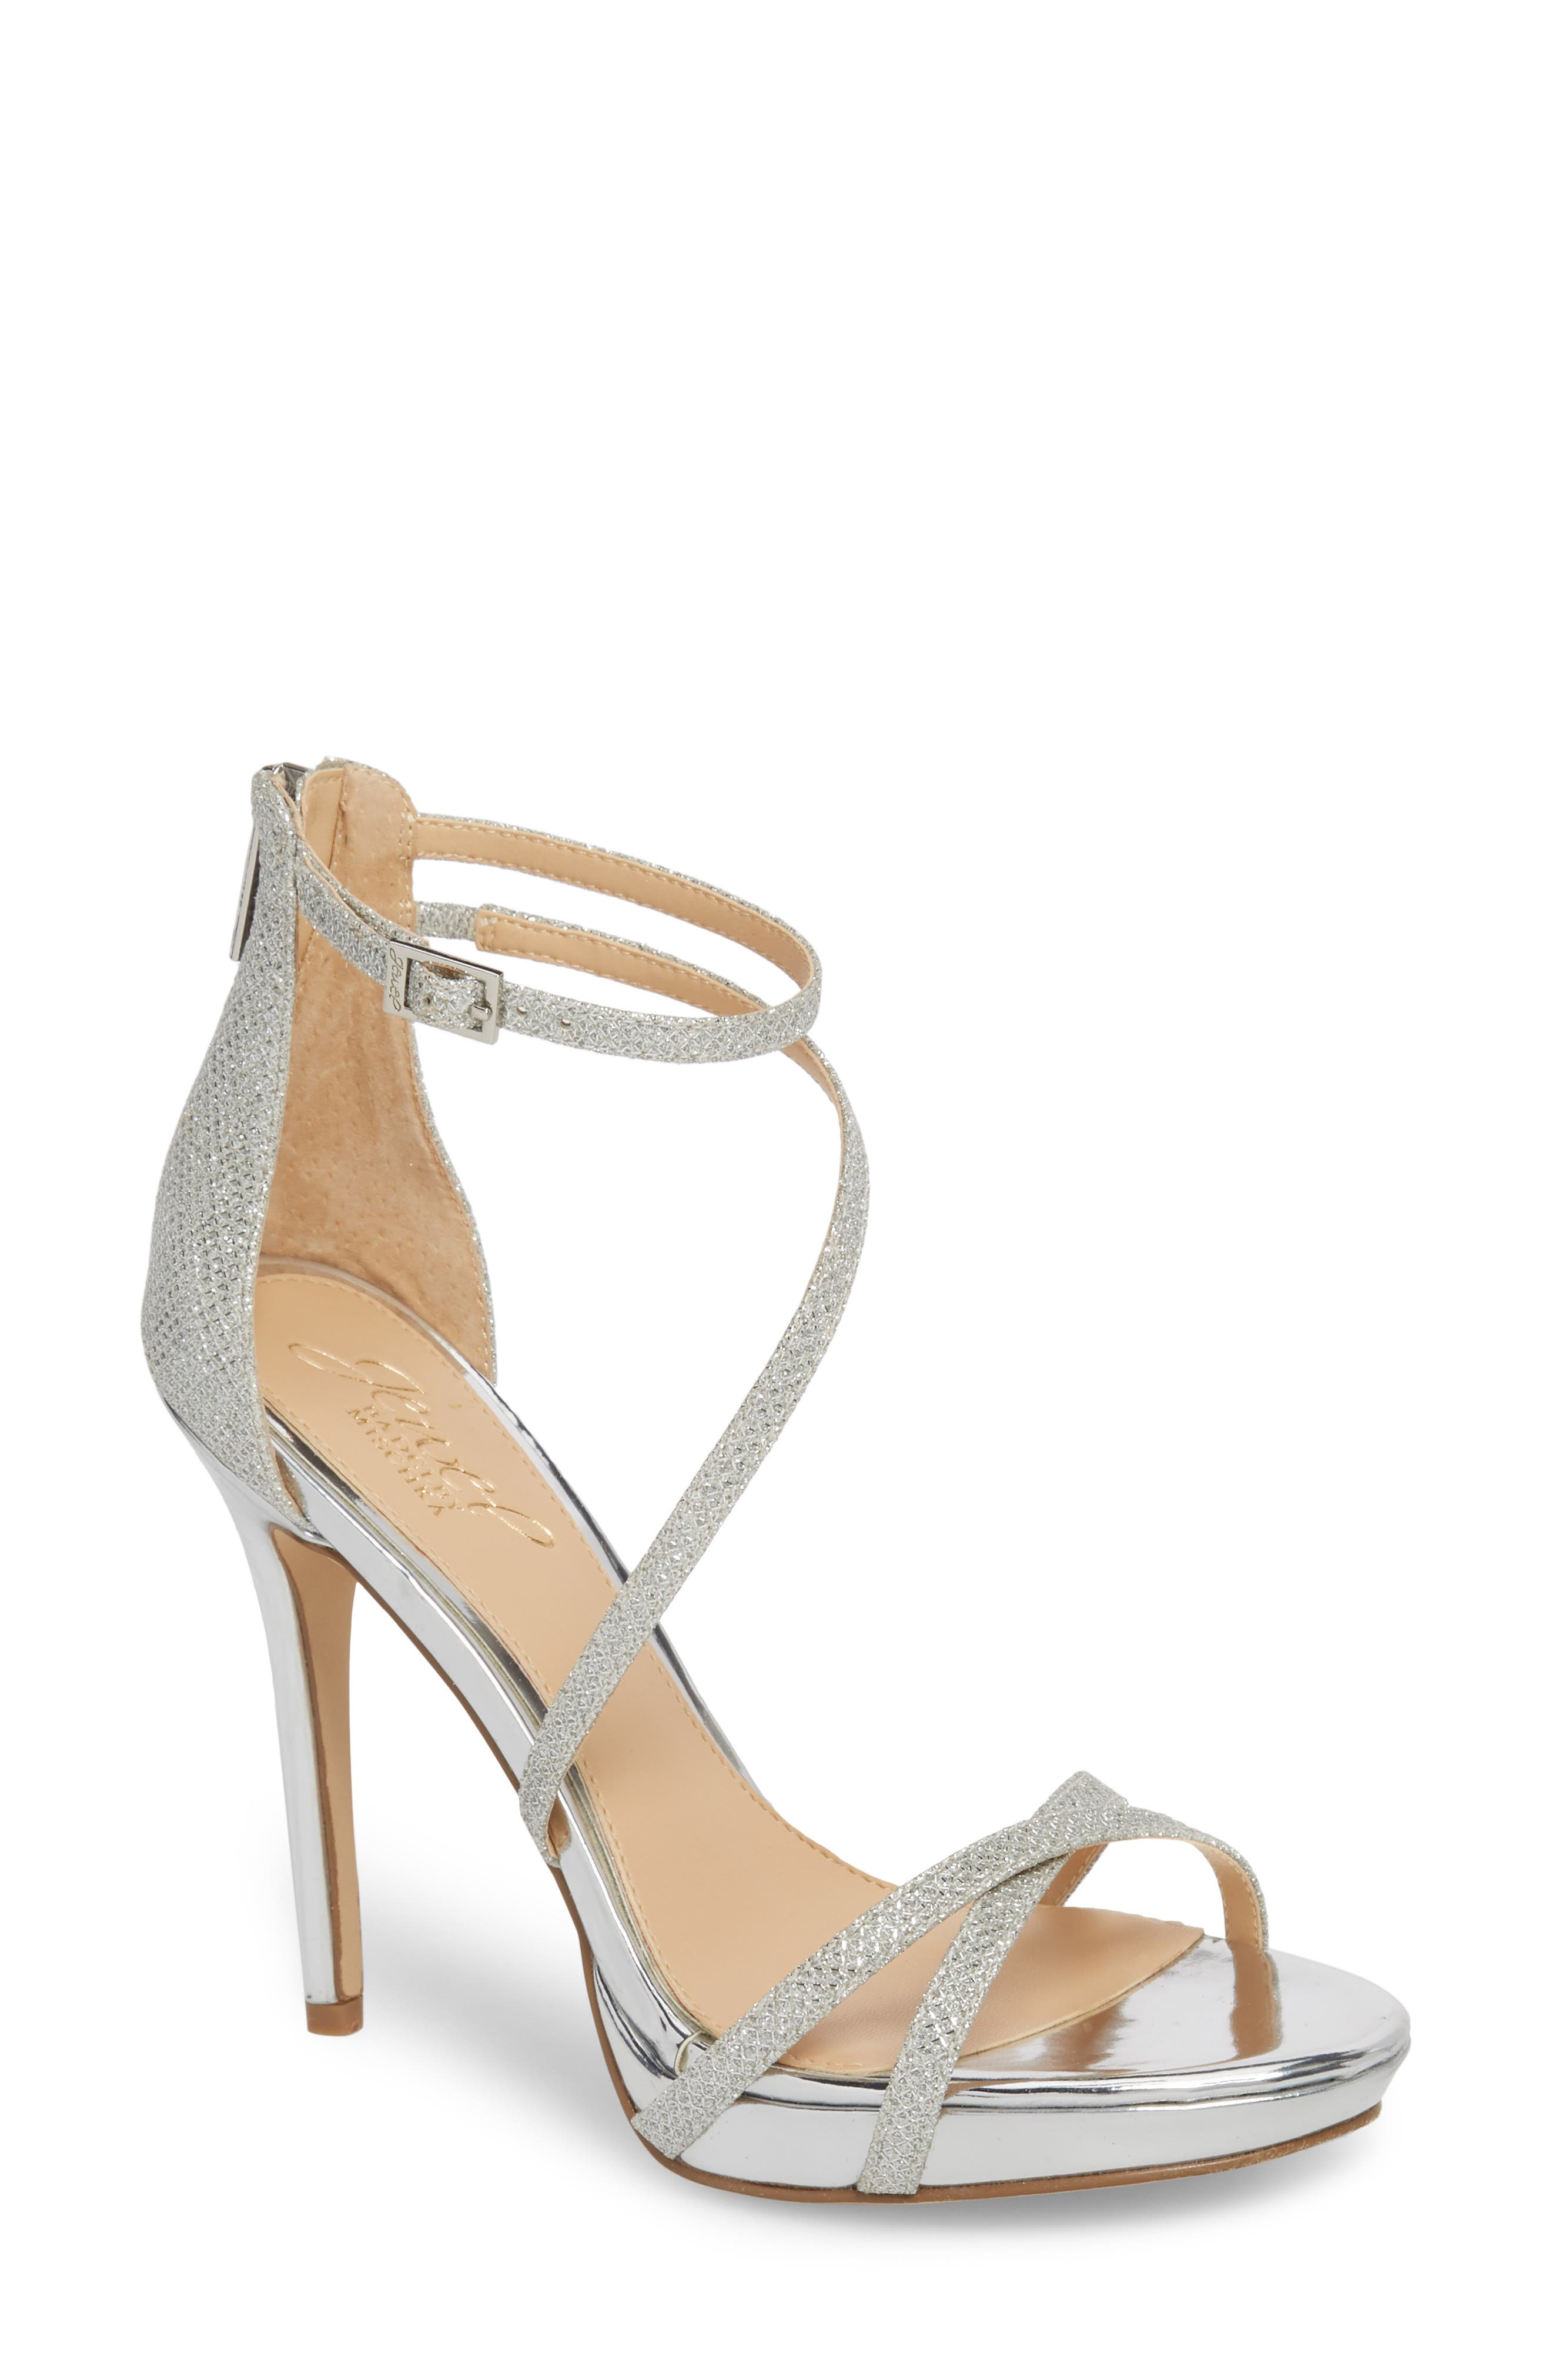 Galen Strappy Platform Sandal,                             Main thumbnail 1, color,                             SILVER GLITTER FABRIC